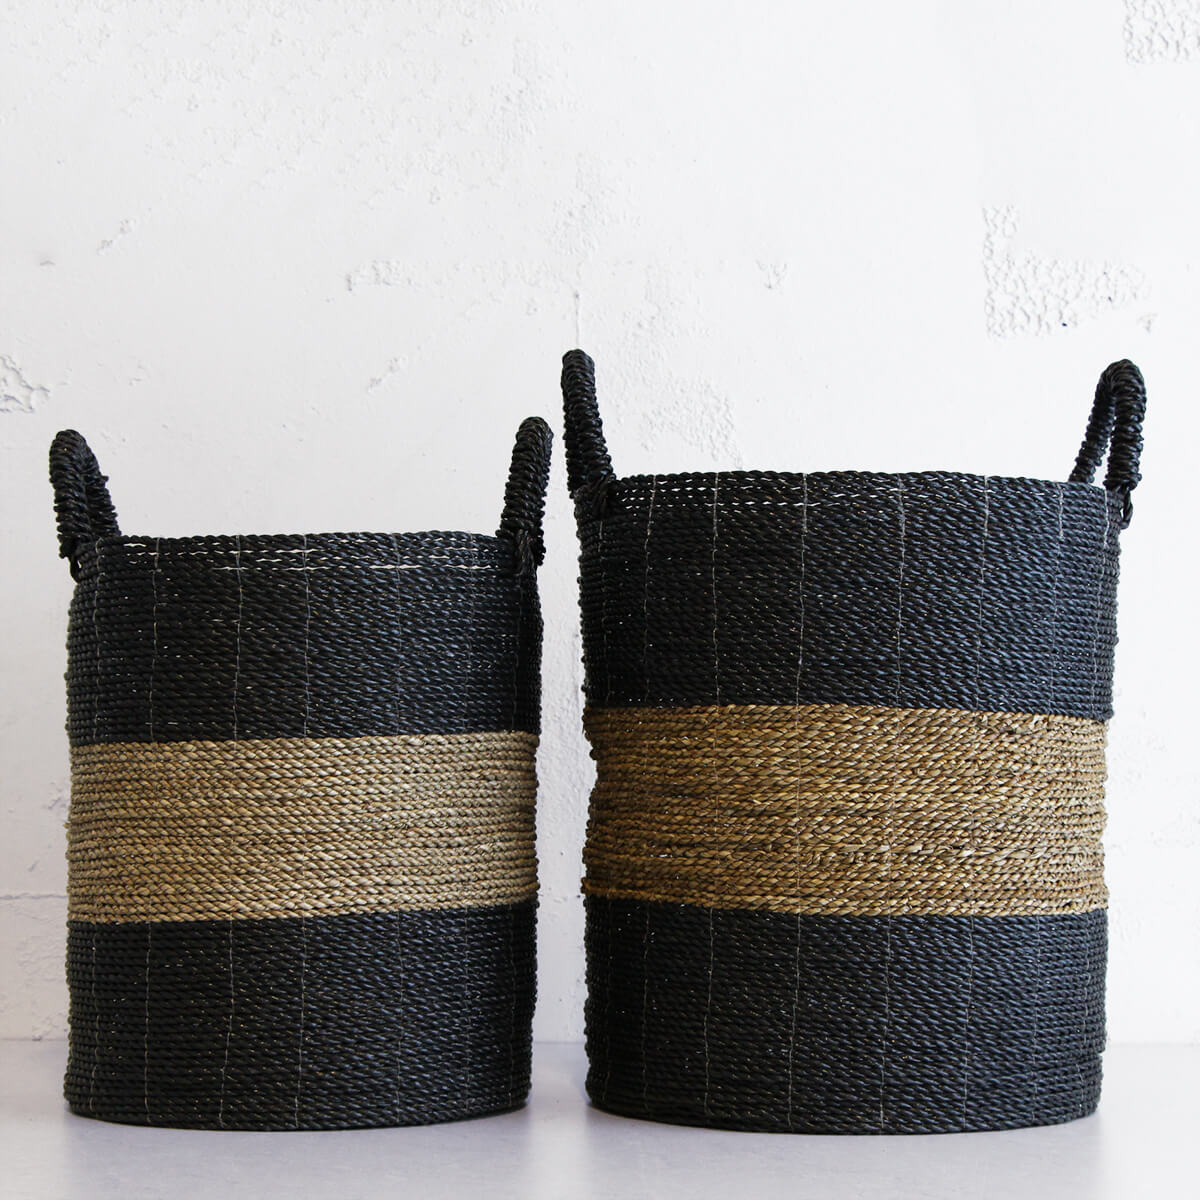 SEAGRASS STORAGE BASKET | BLACK + NATURAL STRIPE | TALL + MEDIUM PACKAGE